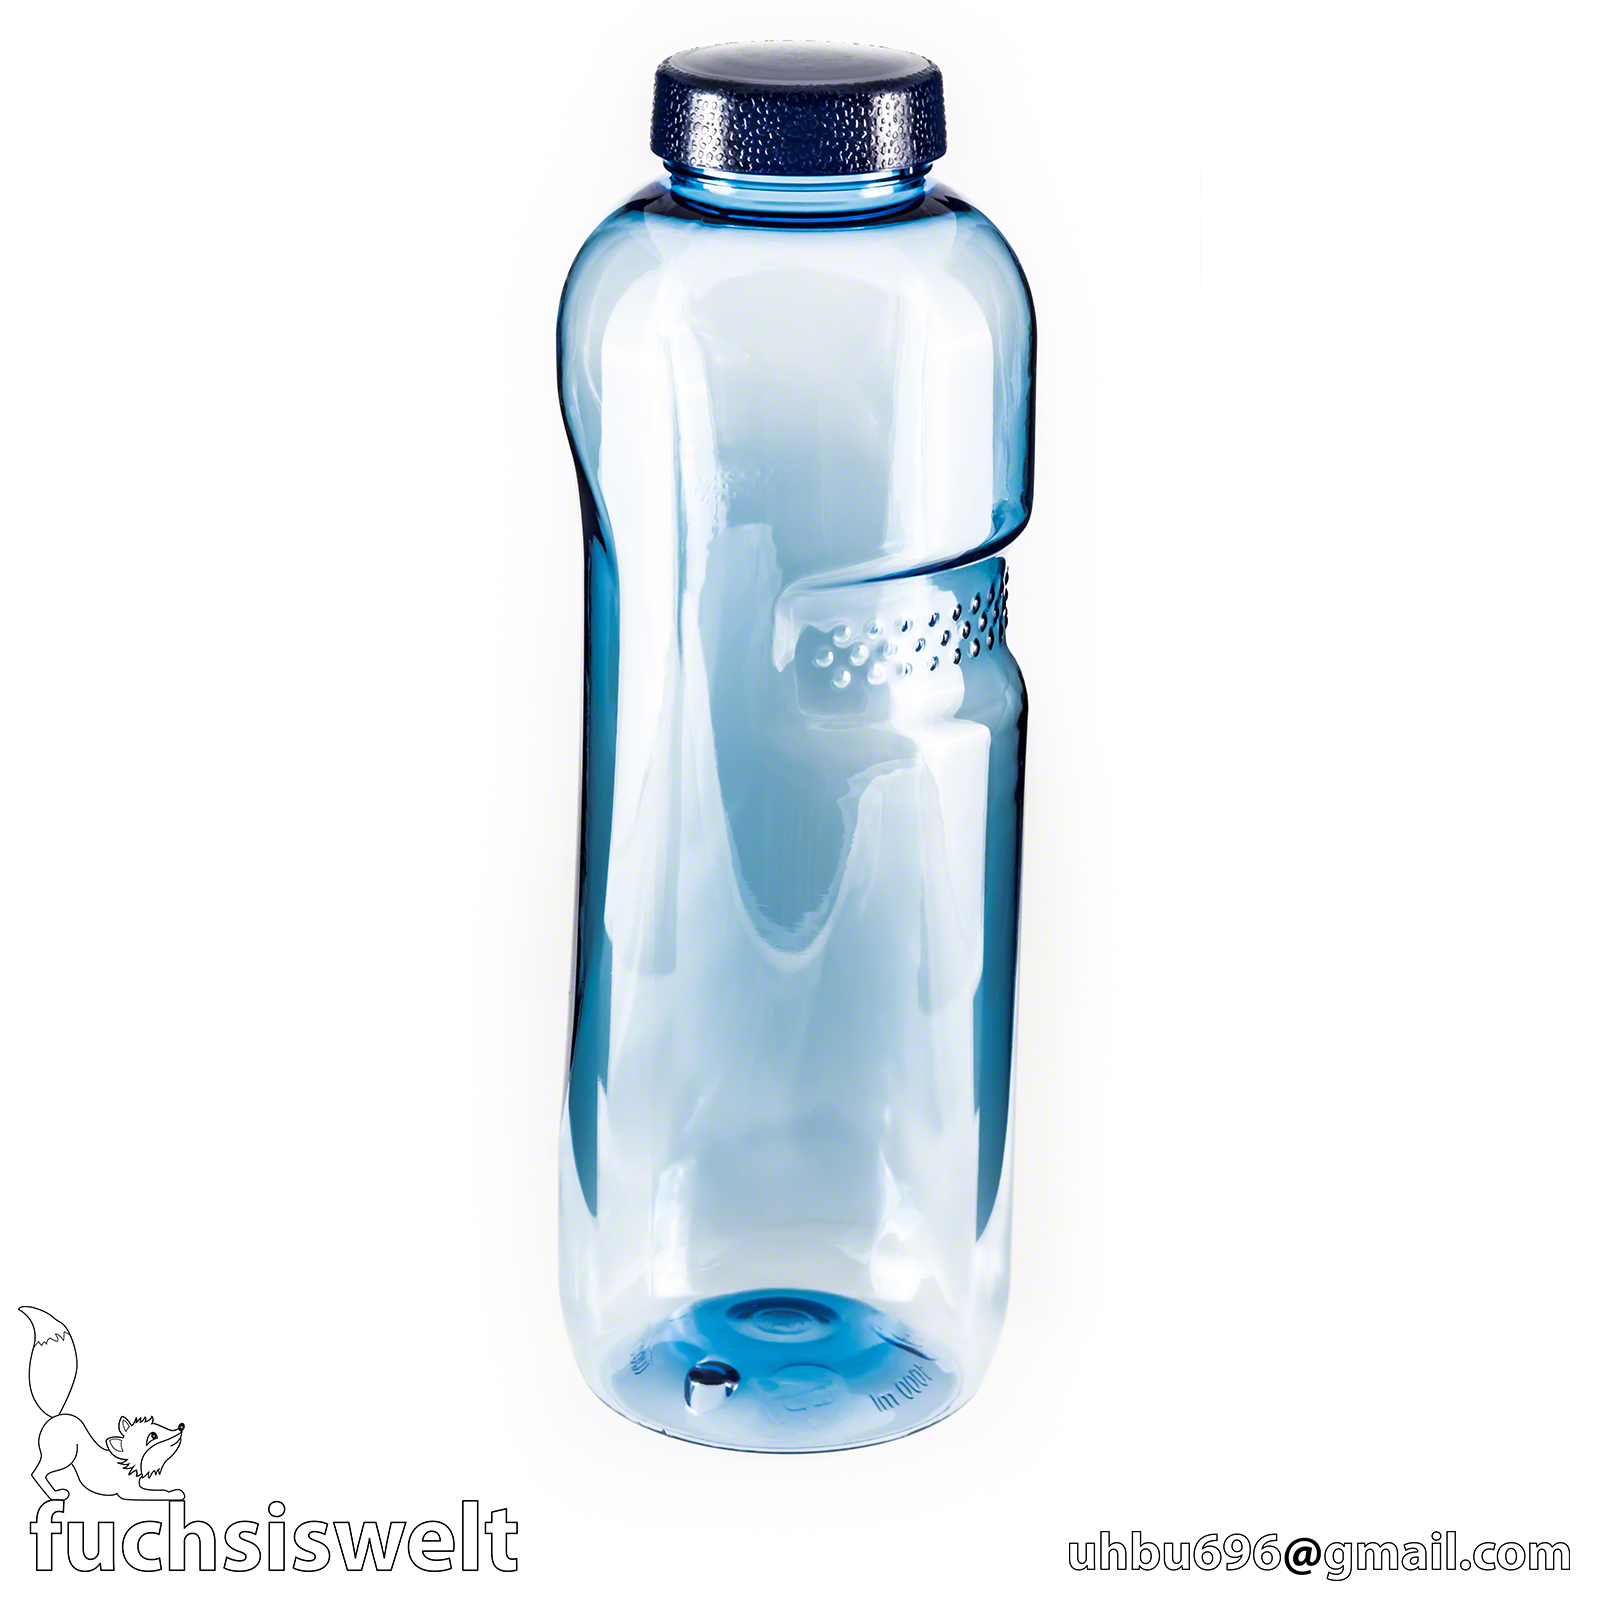 wasserflasche 1 liter soulbottle wasserflasche 1 liter hierbeimir wasserflasche 1 5 liter mit. Black Bedroom Furniture Sets. Home Design Ideas